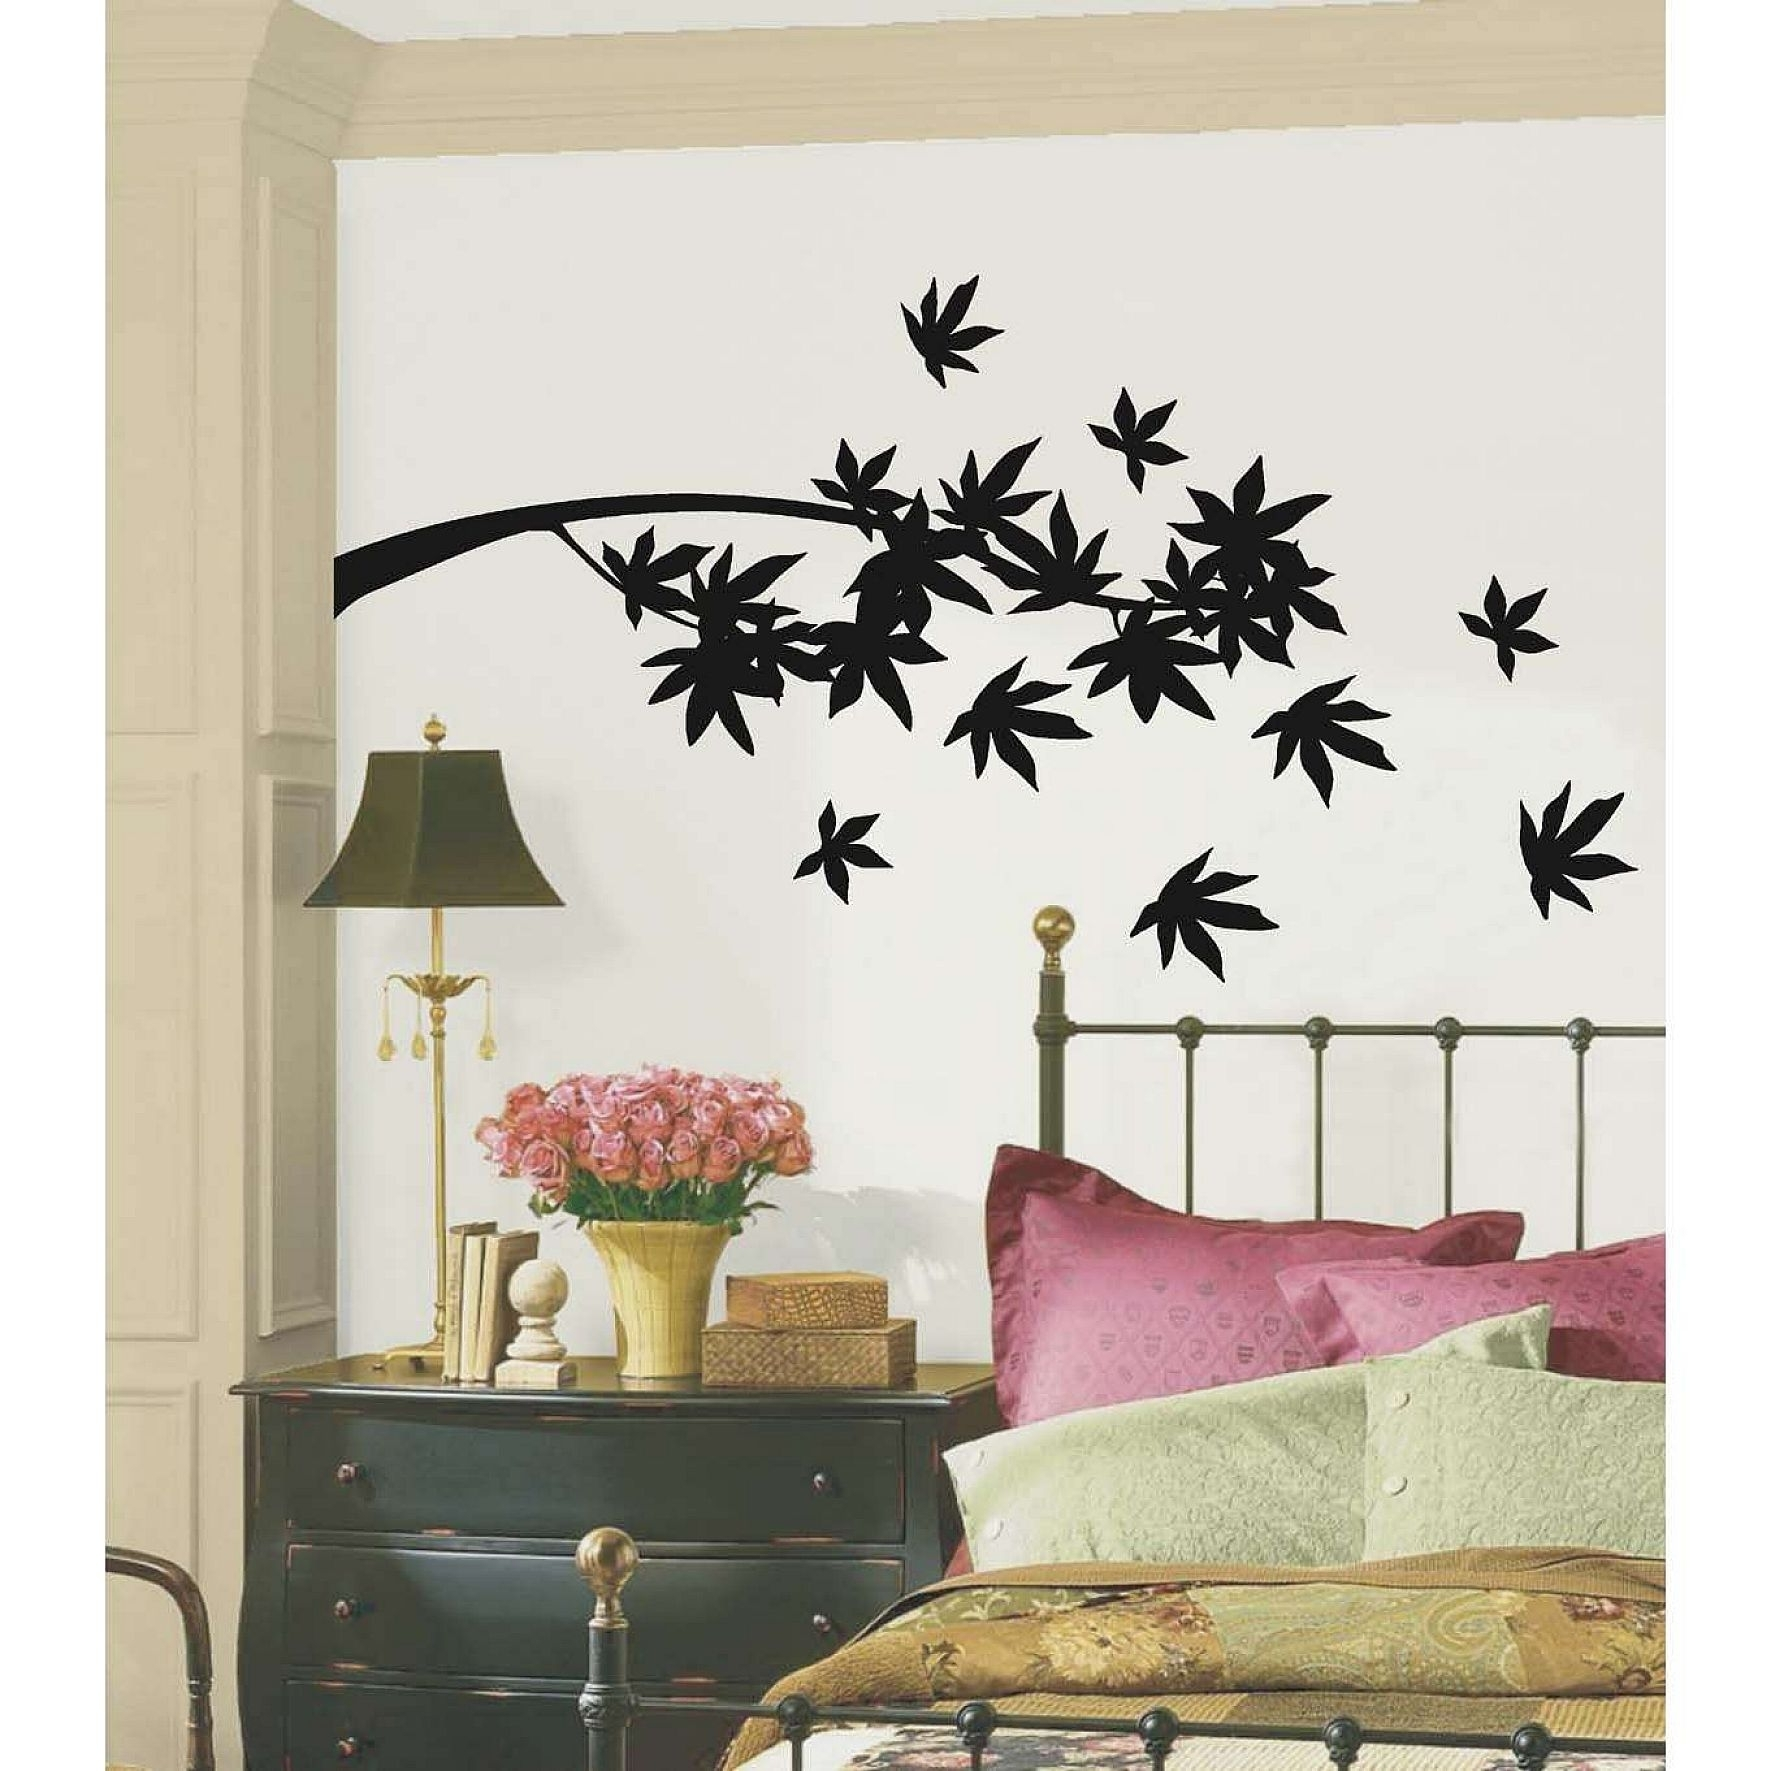 Wall Decor : Decorative Wall Decals Butterfly Wall Decals Wall Art With Most Popular Removable Wall Accents (View 7 of 15)